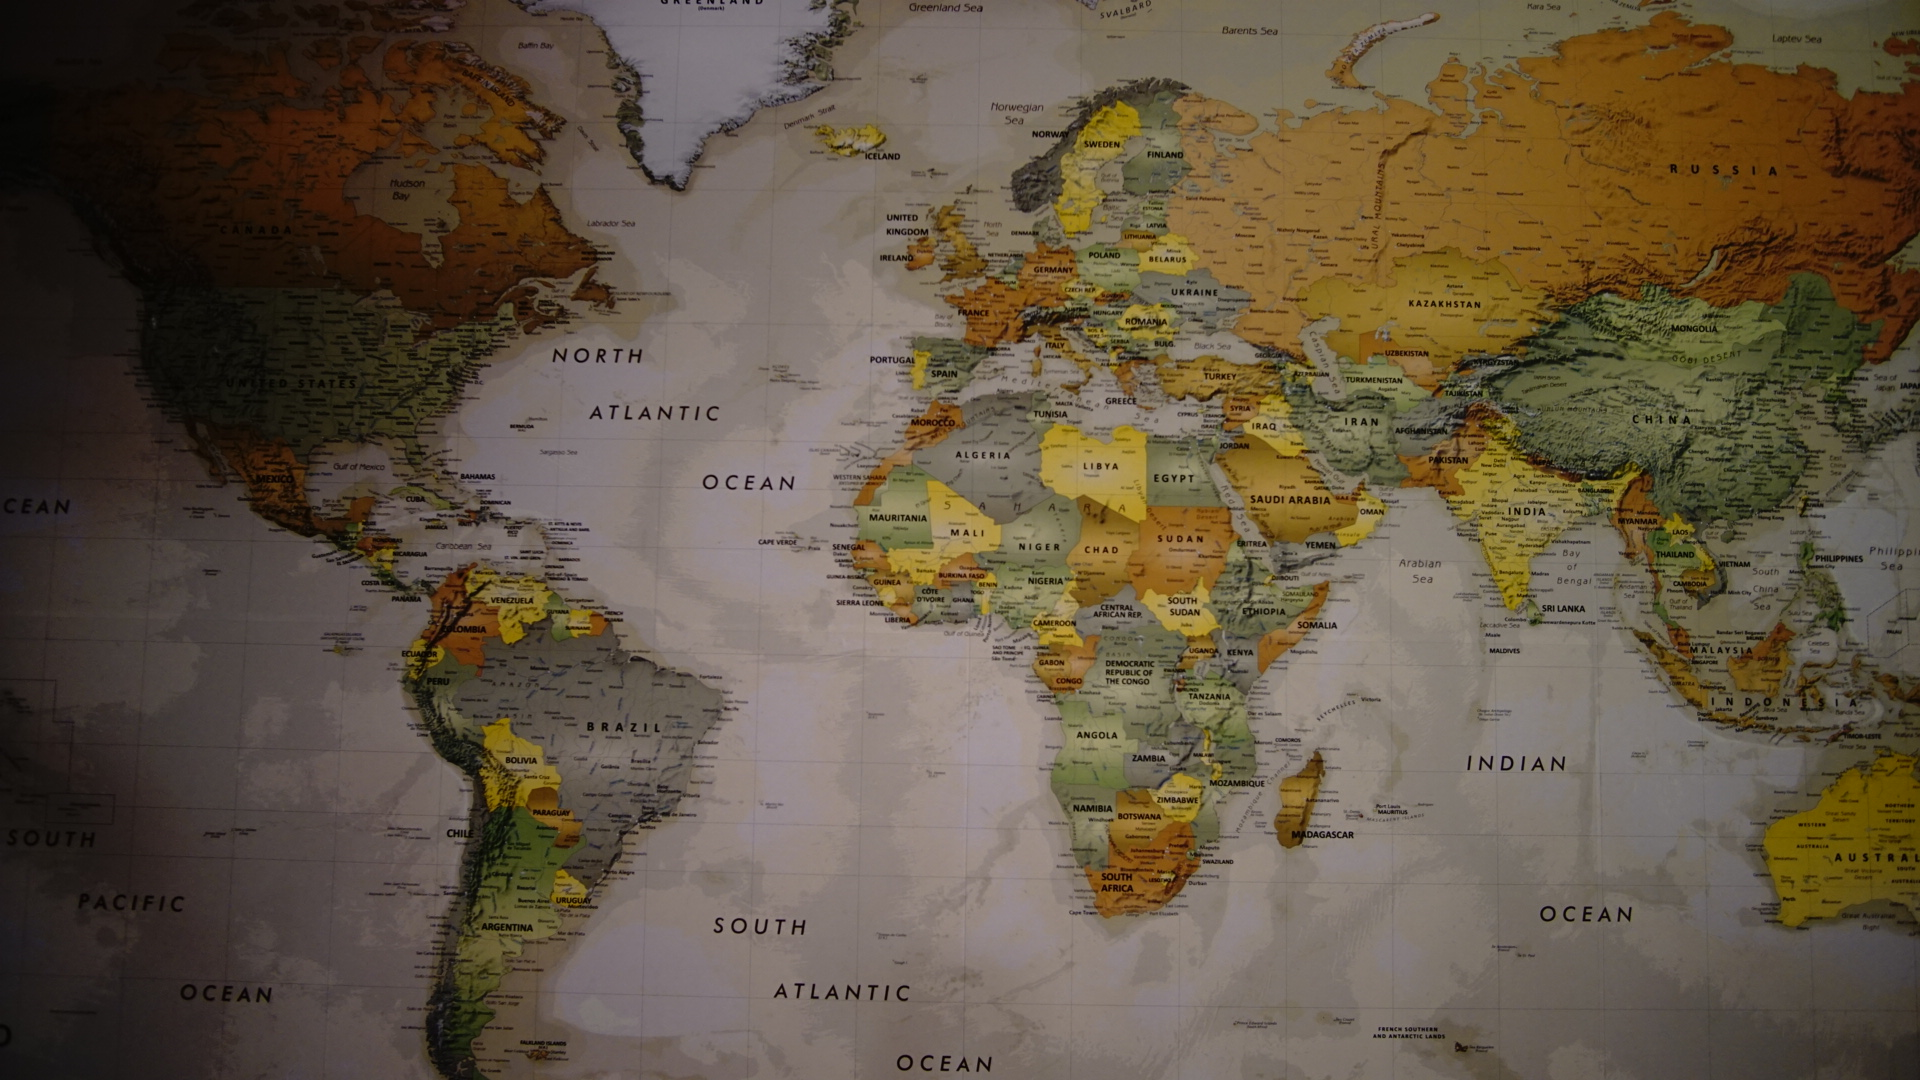 Missions - Adding our hands and feet to Gospel work at home and abroad